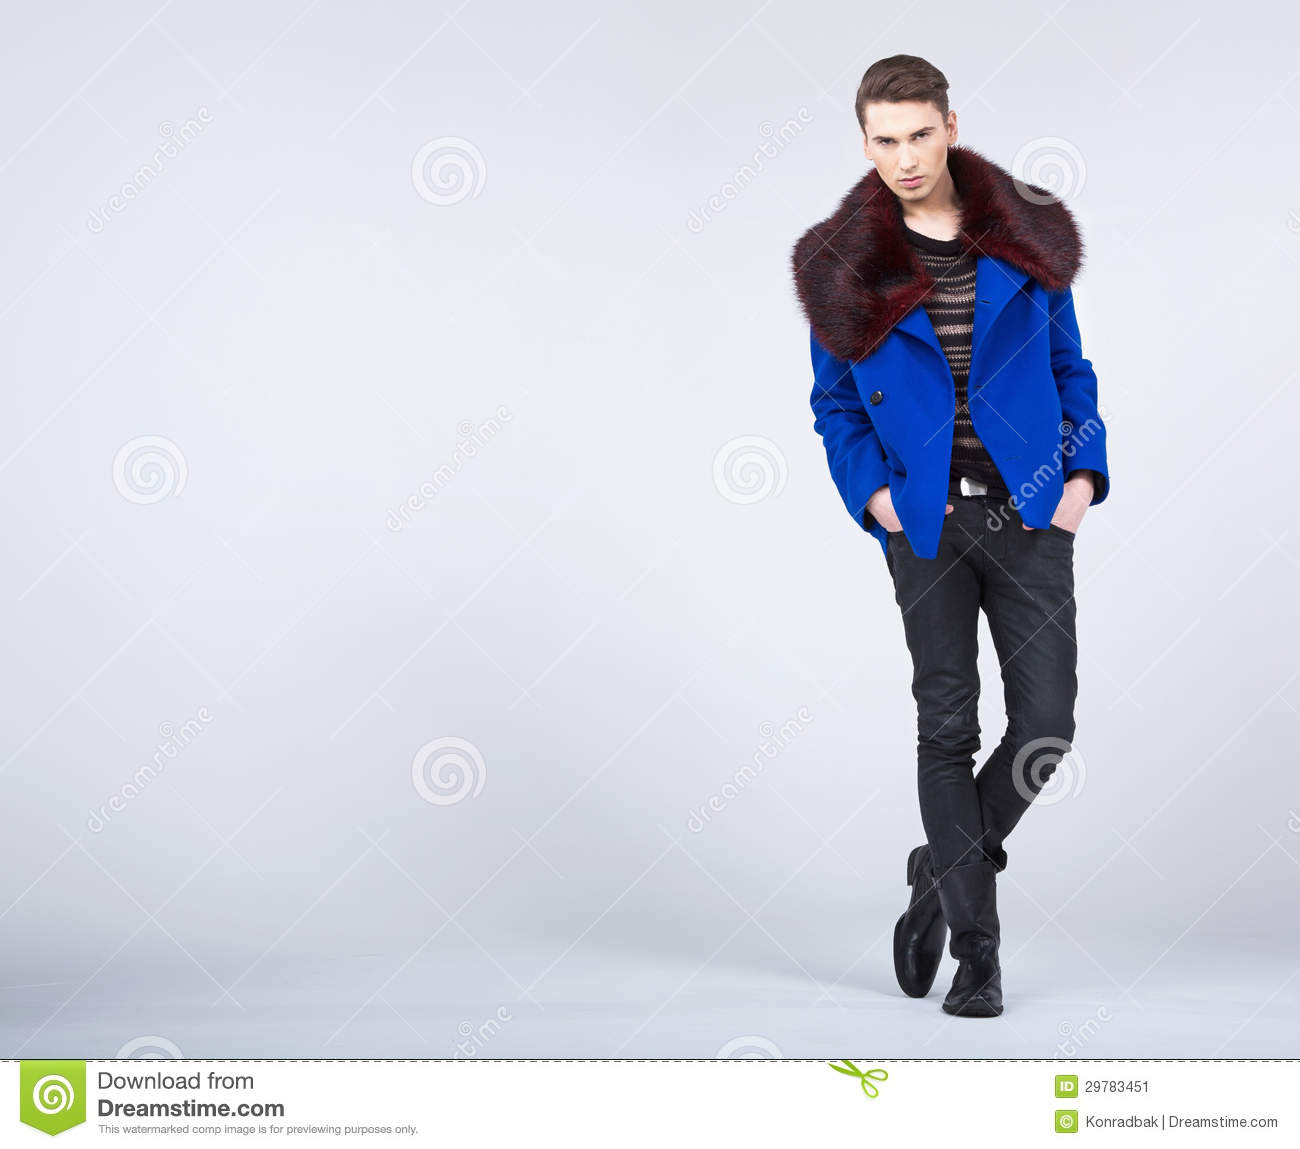 Stylish Young Man In Fashion Pose Stock Image - Image of